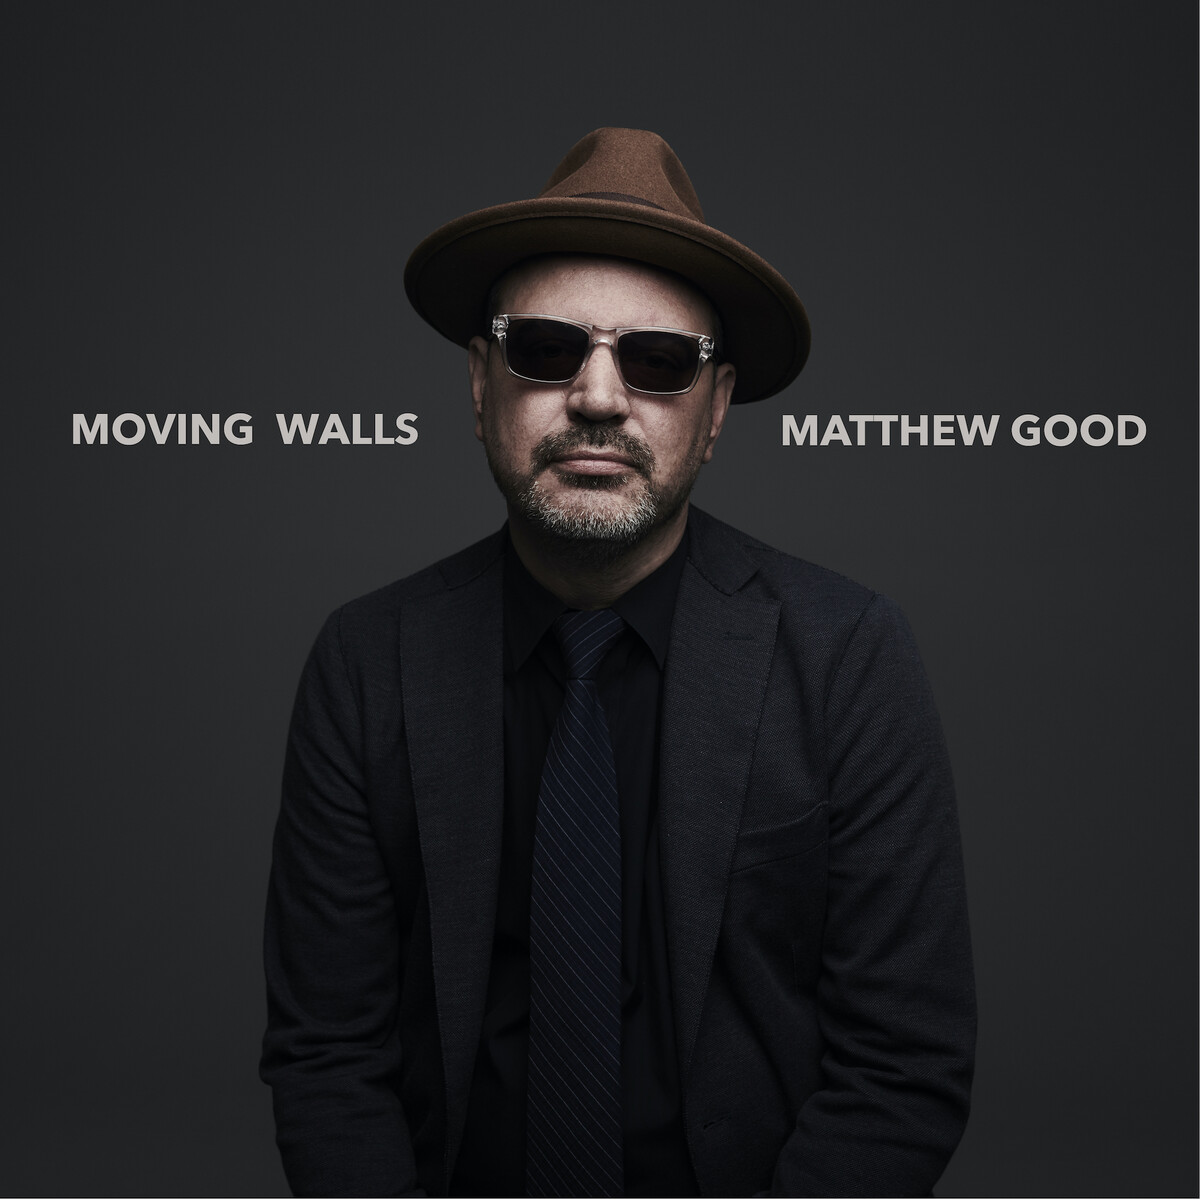 Moving Walls by Matthew Good